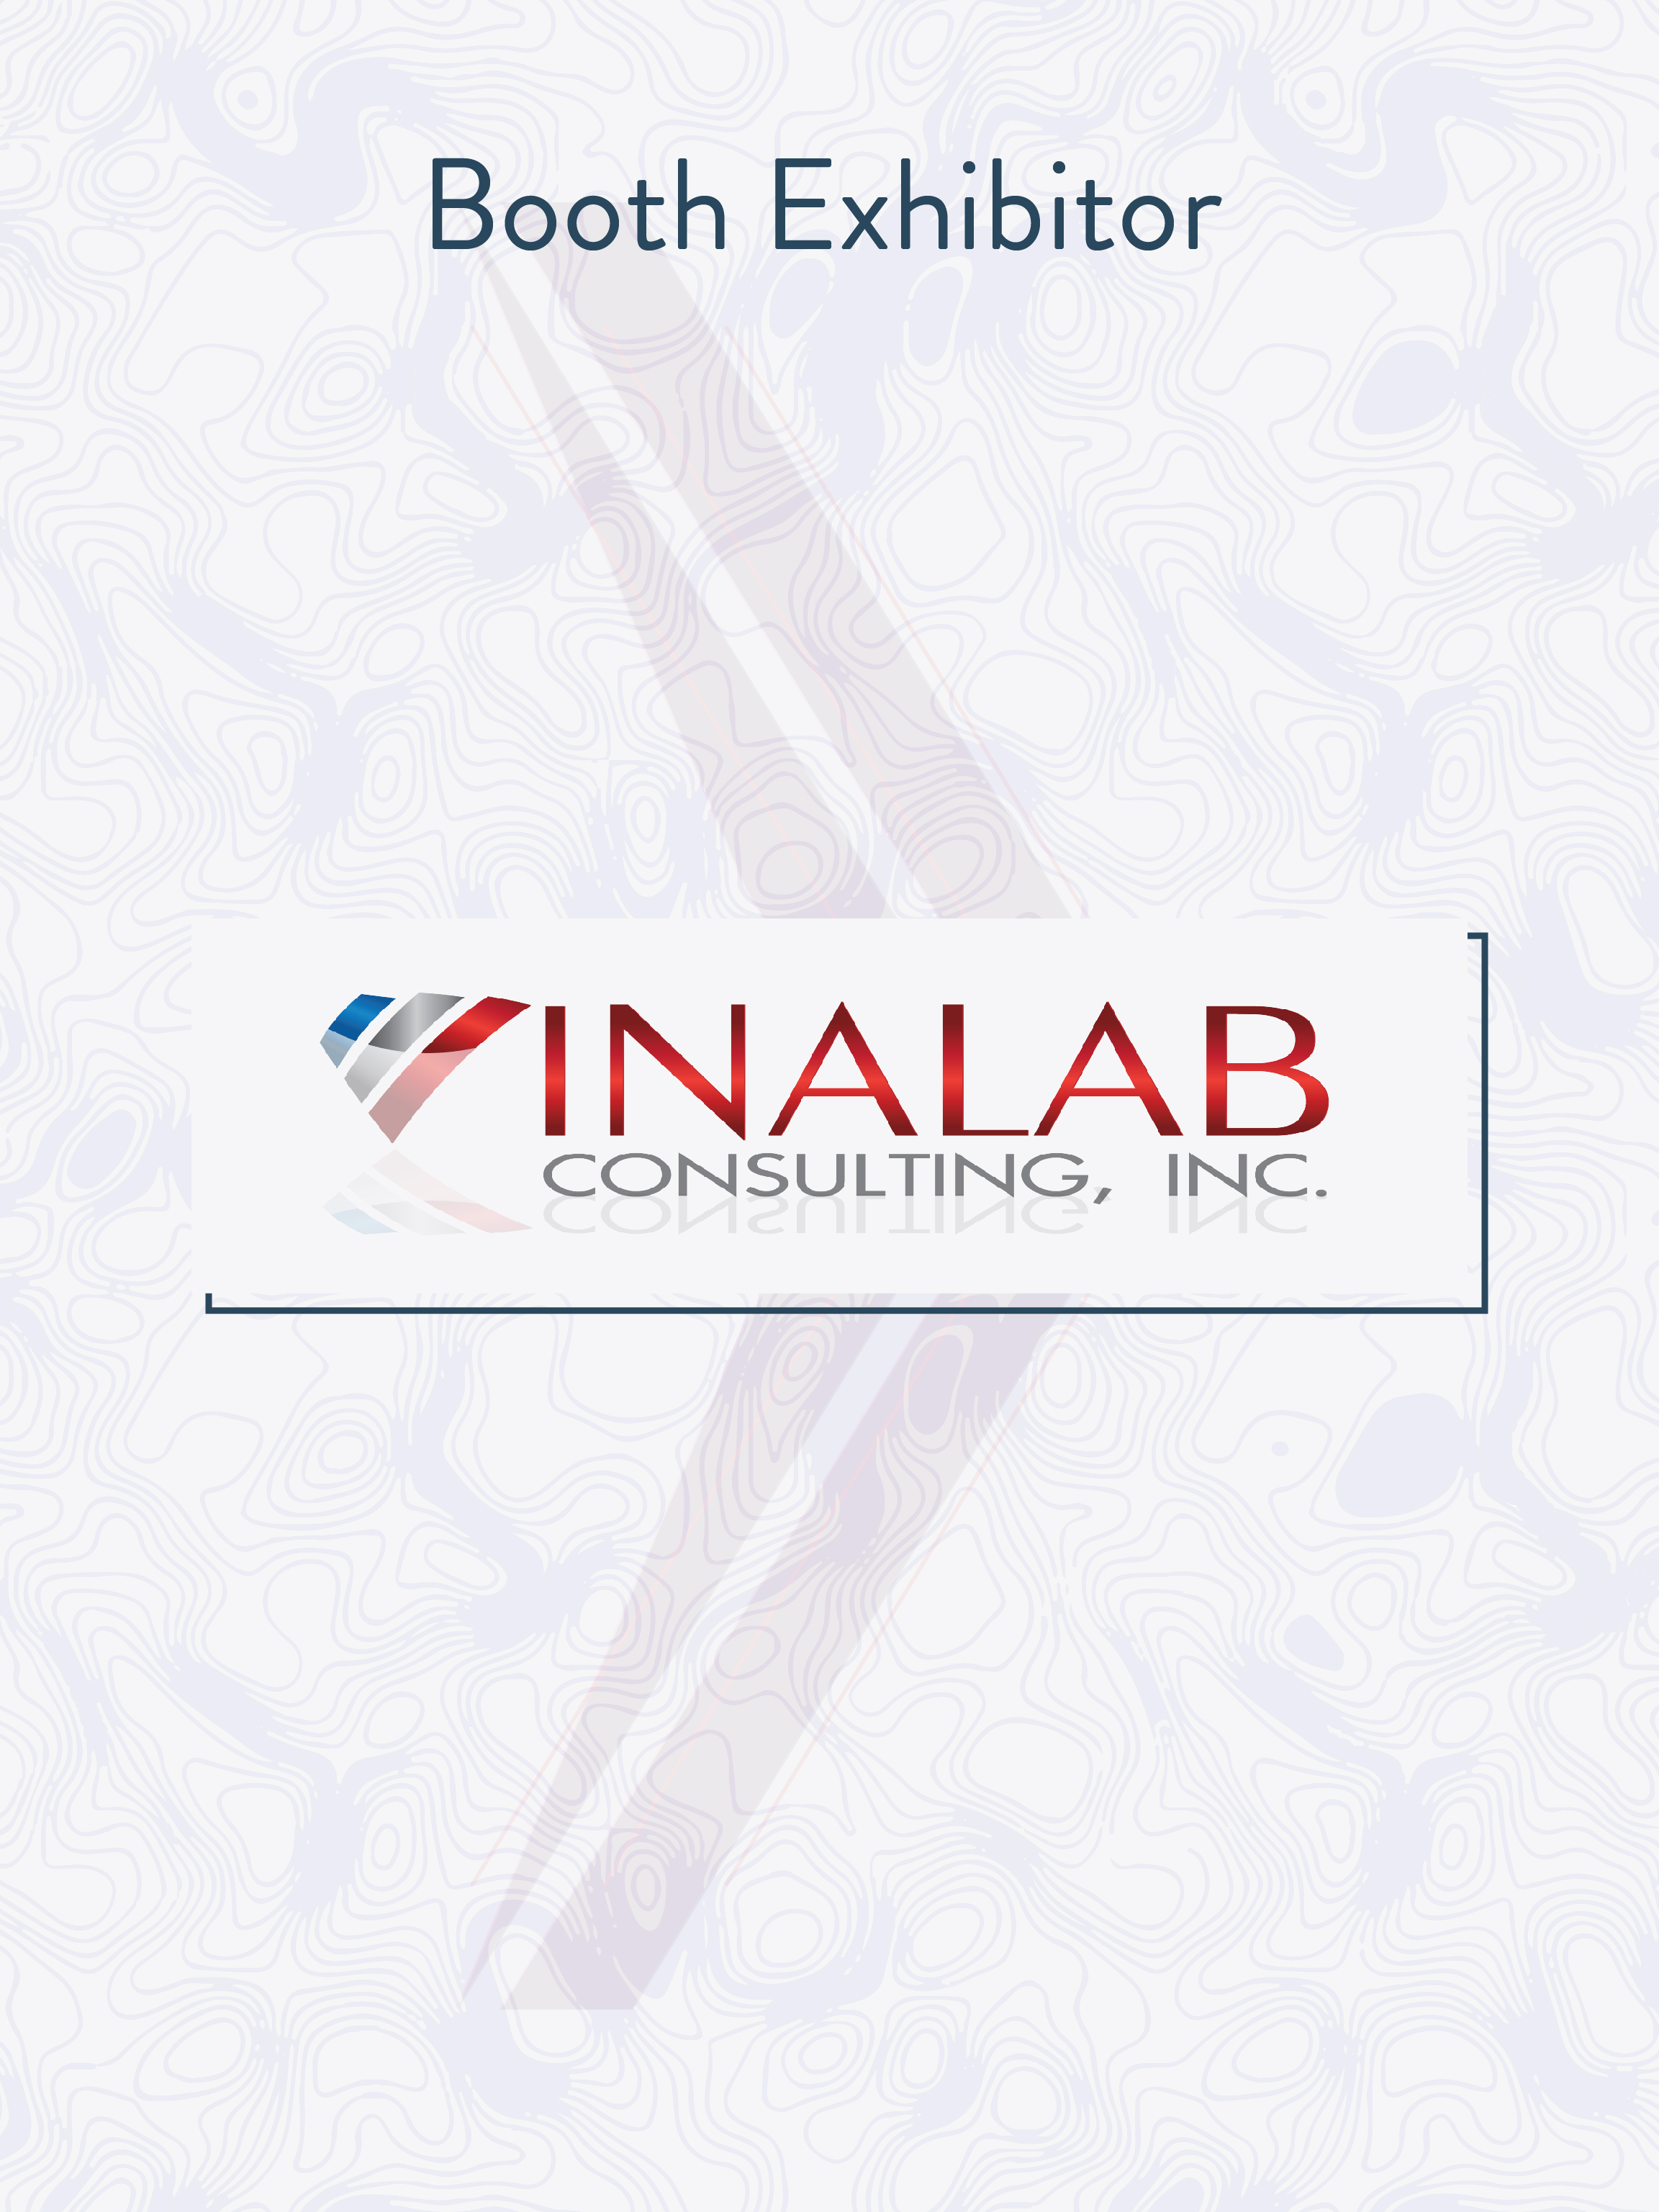 Inalab Consulting Inc.jpg